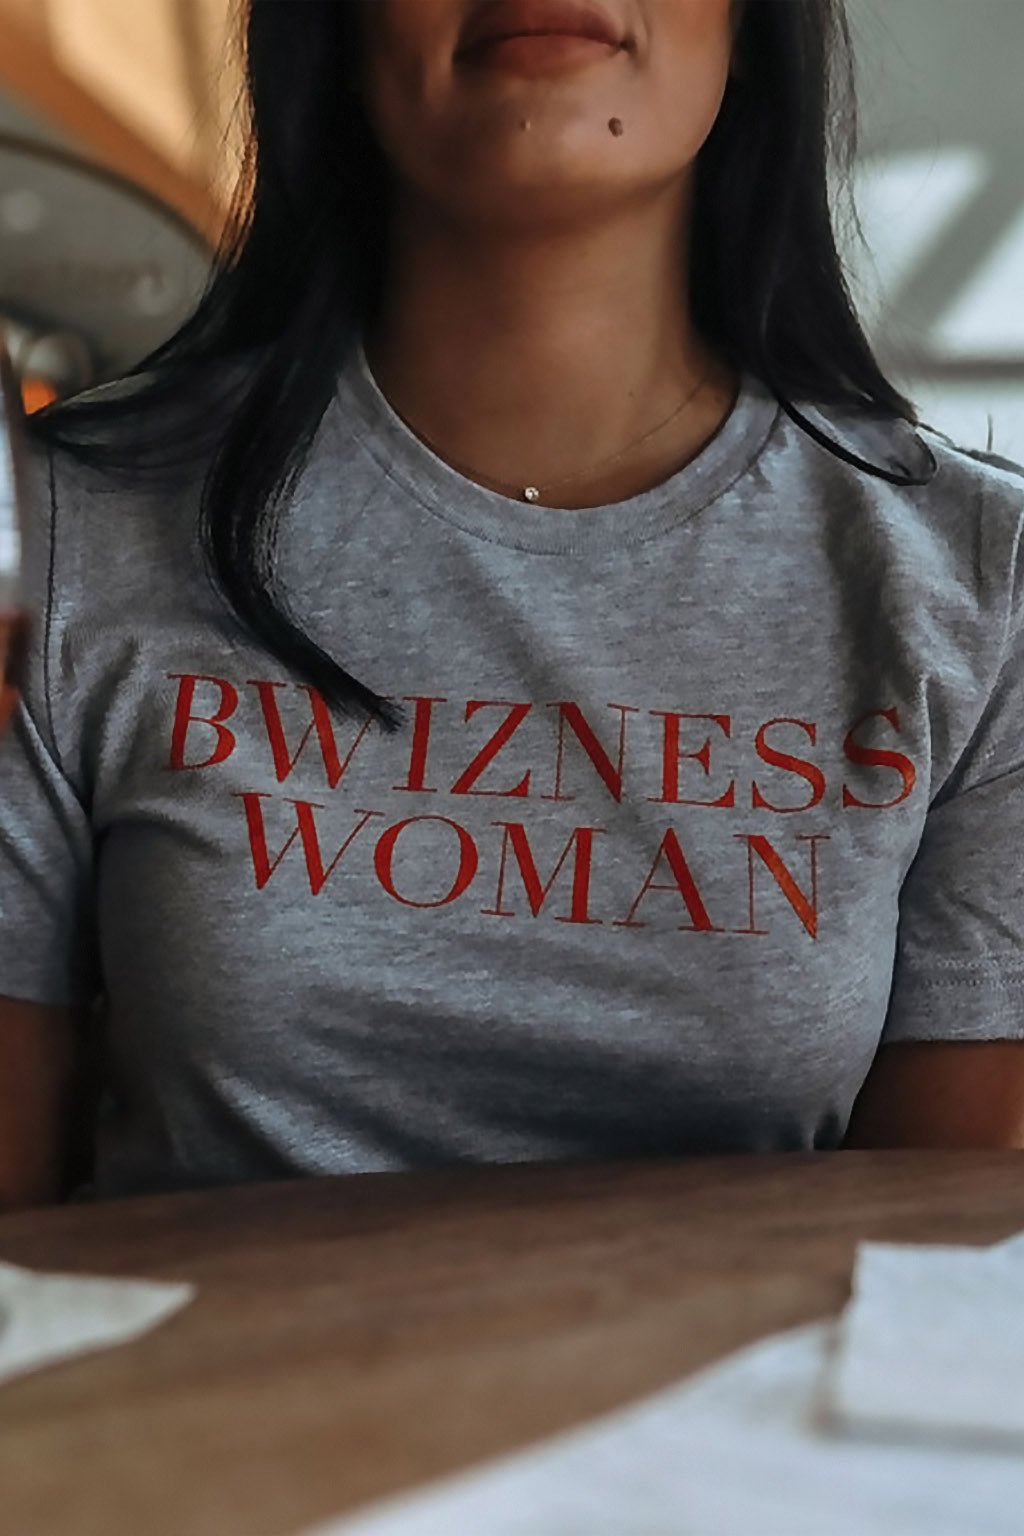 Bwizness Woman